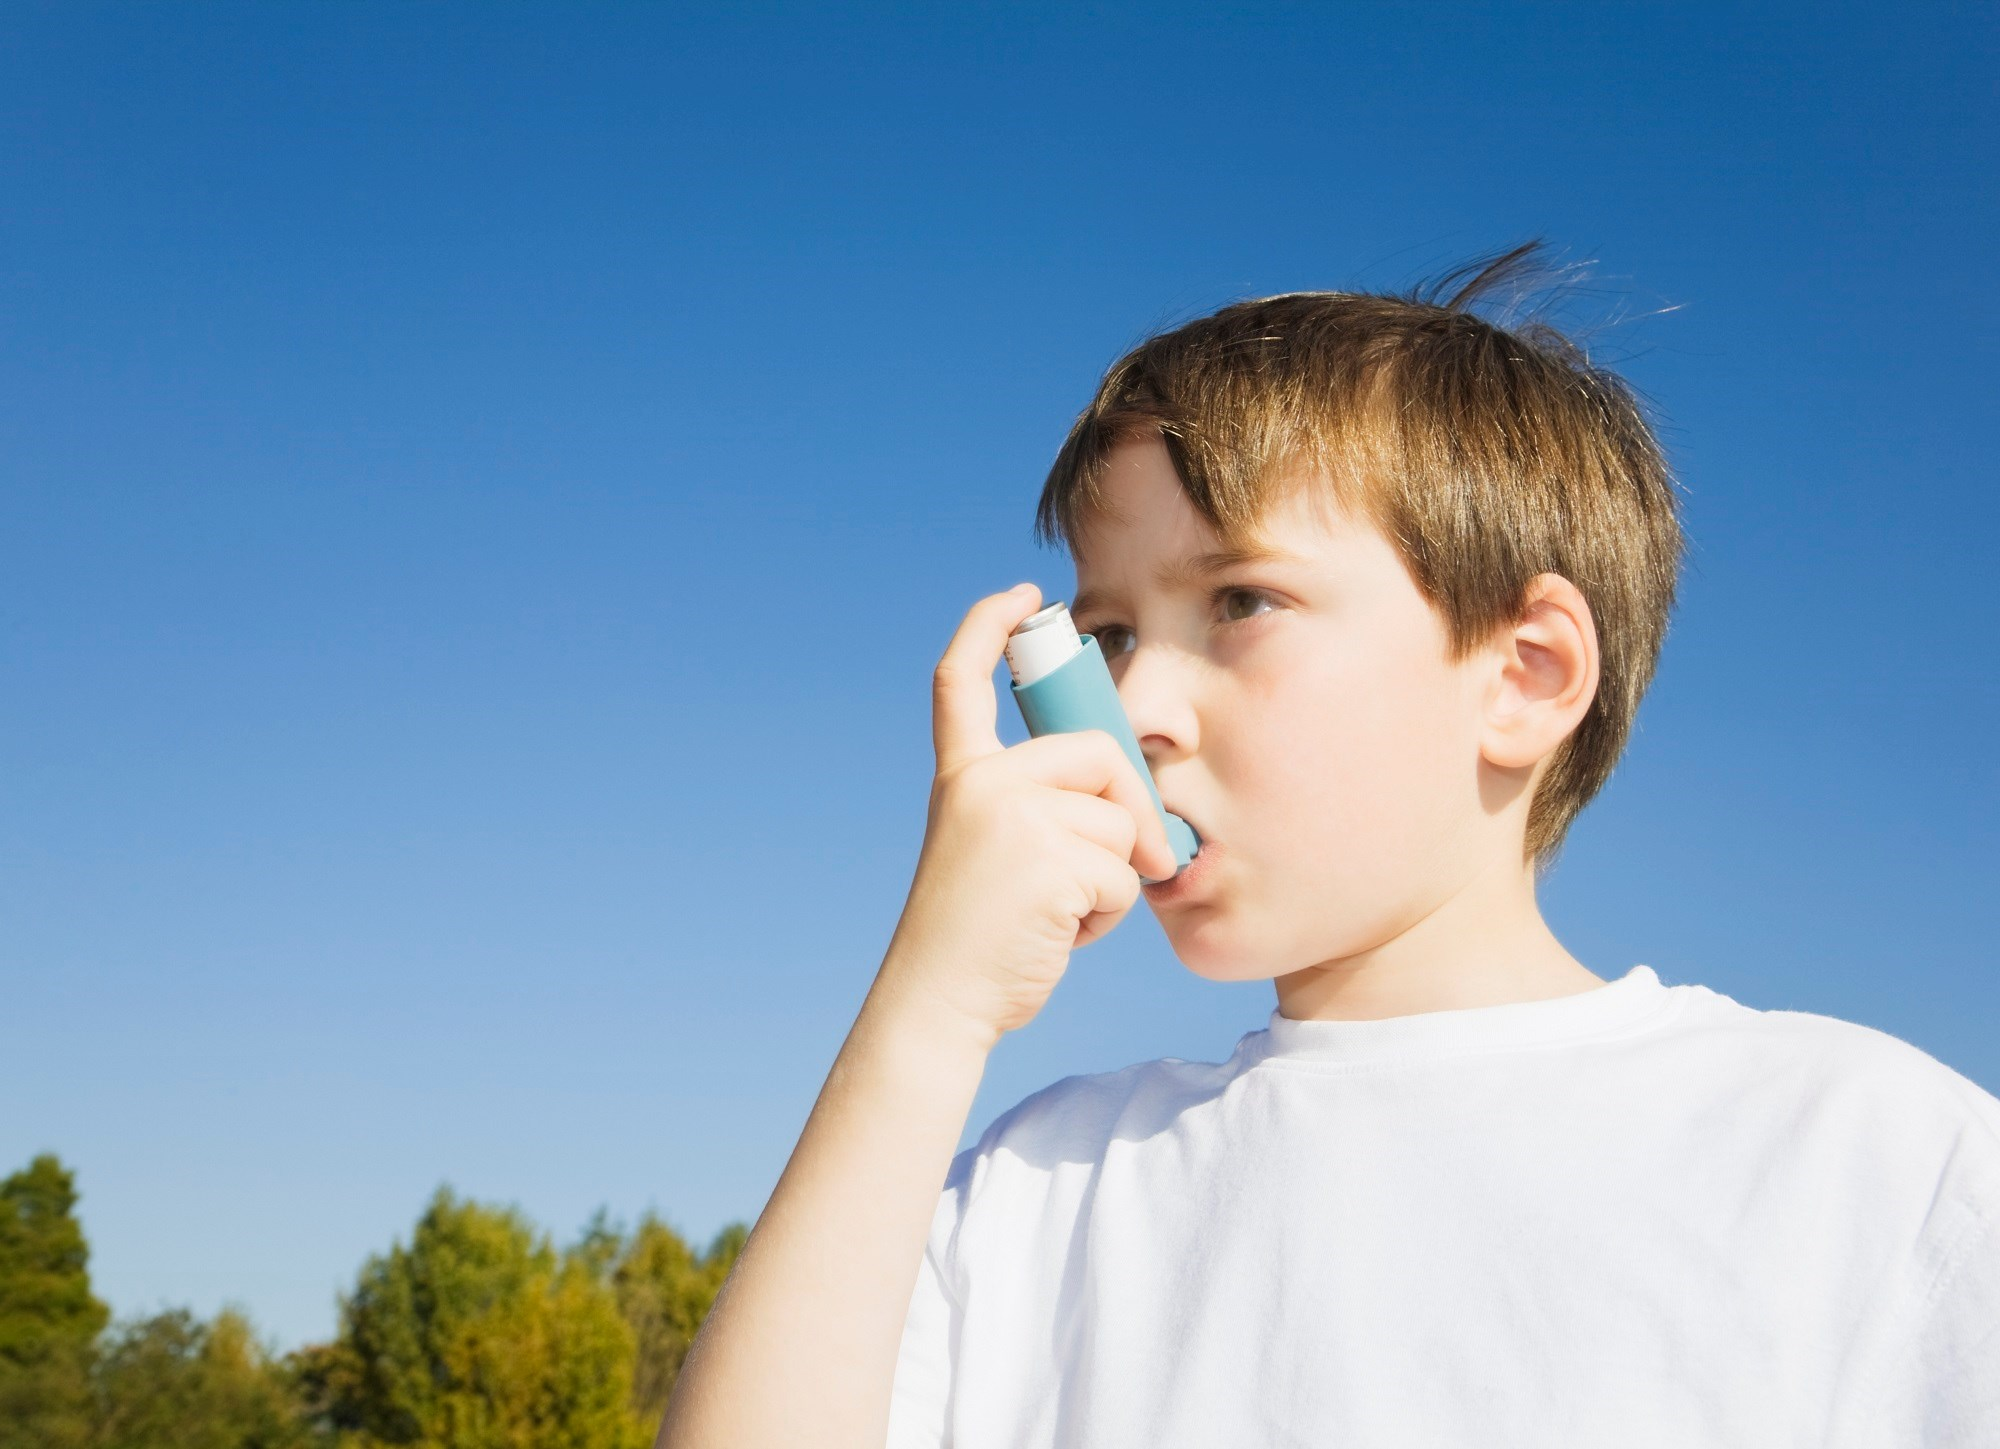 Asthma May Increase Obesity Risk Later in Childhood